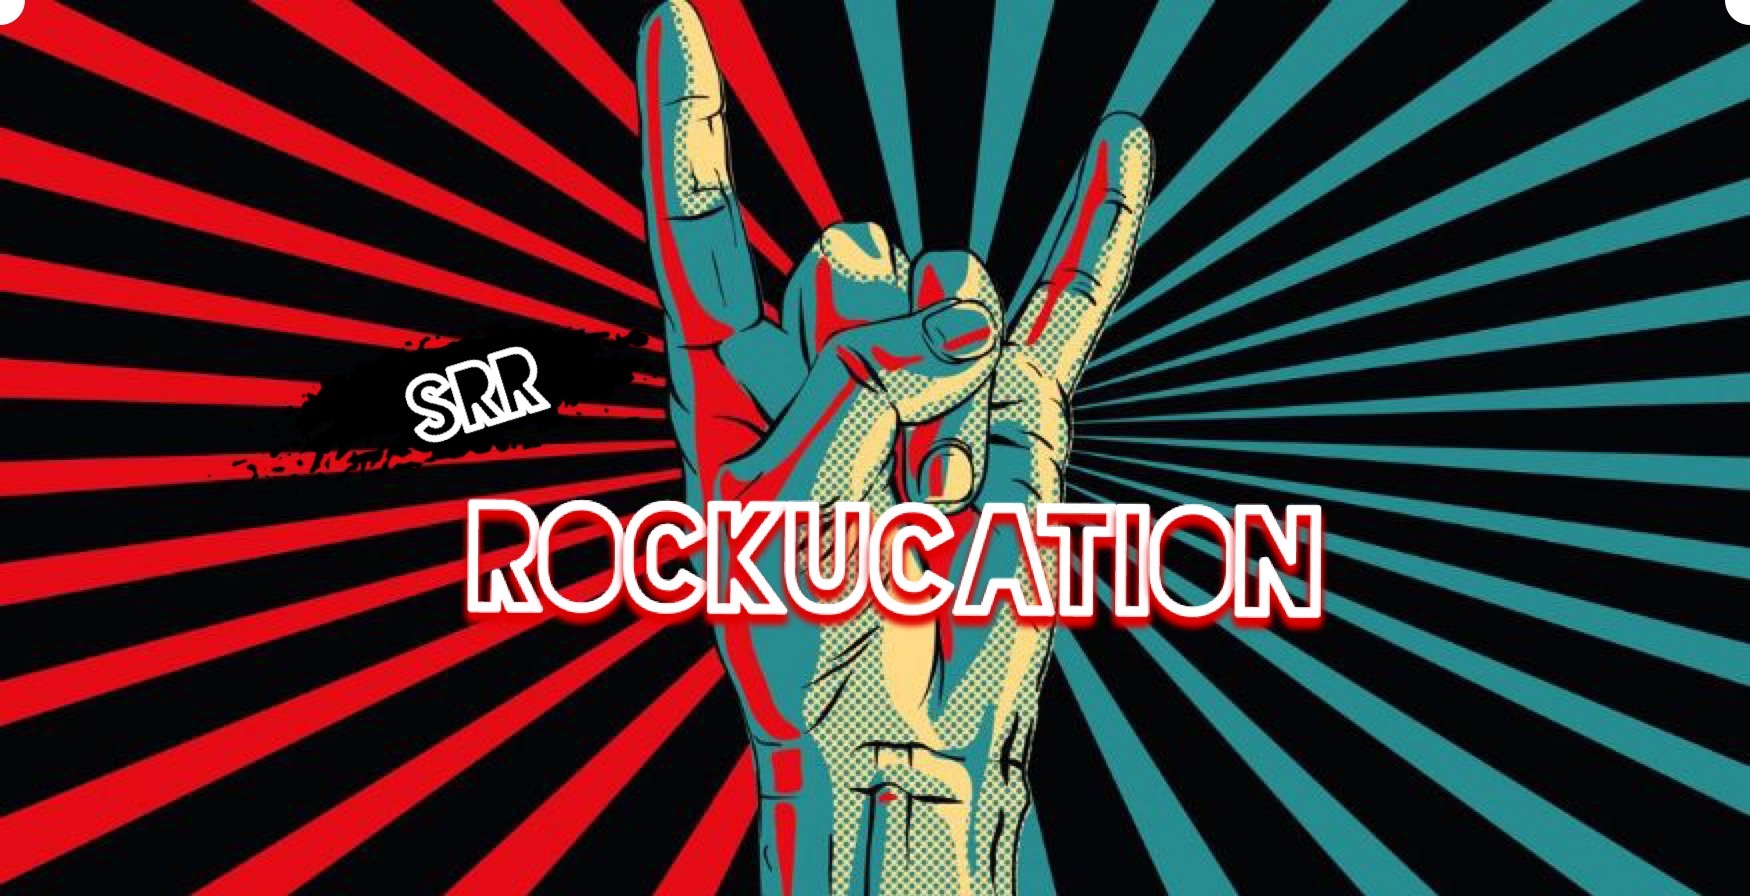 Rockucation Question For The Week Of January 28th, 2018!